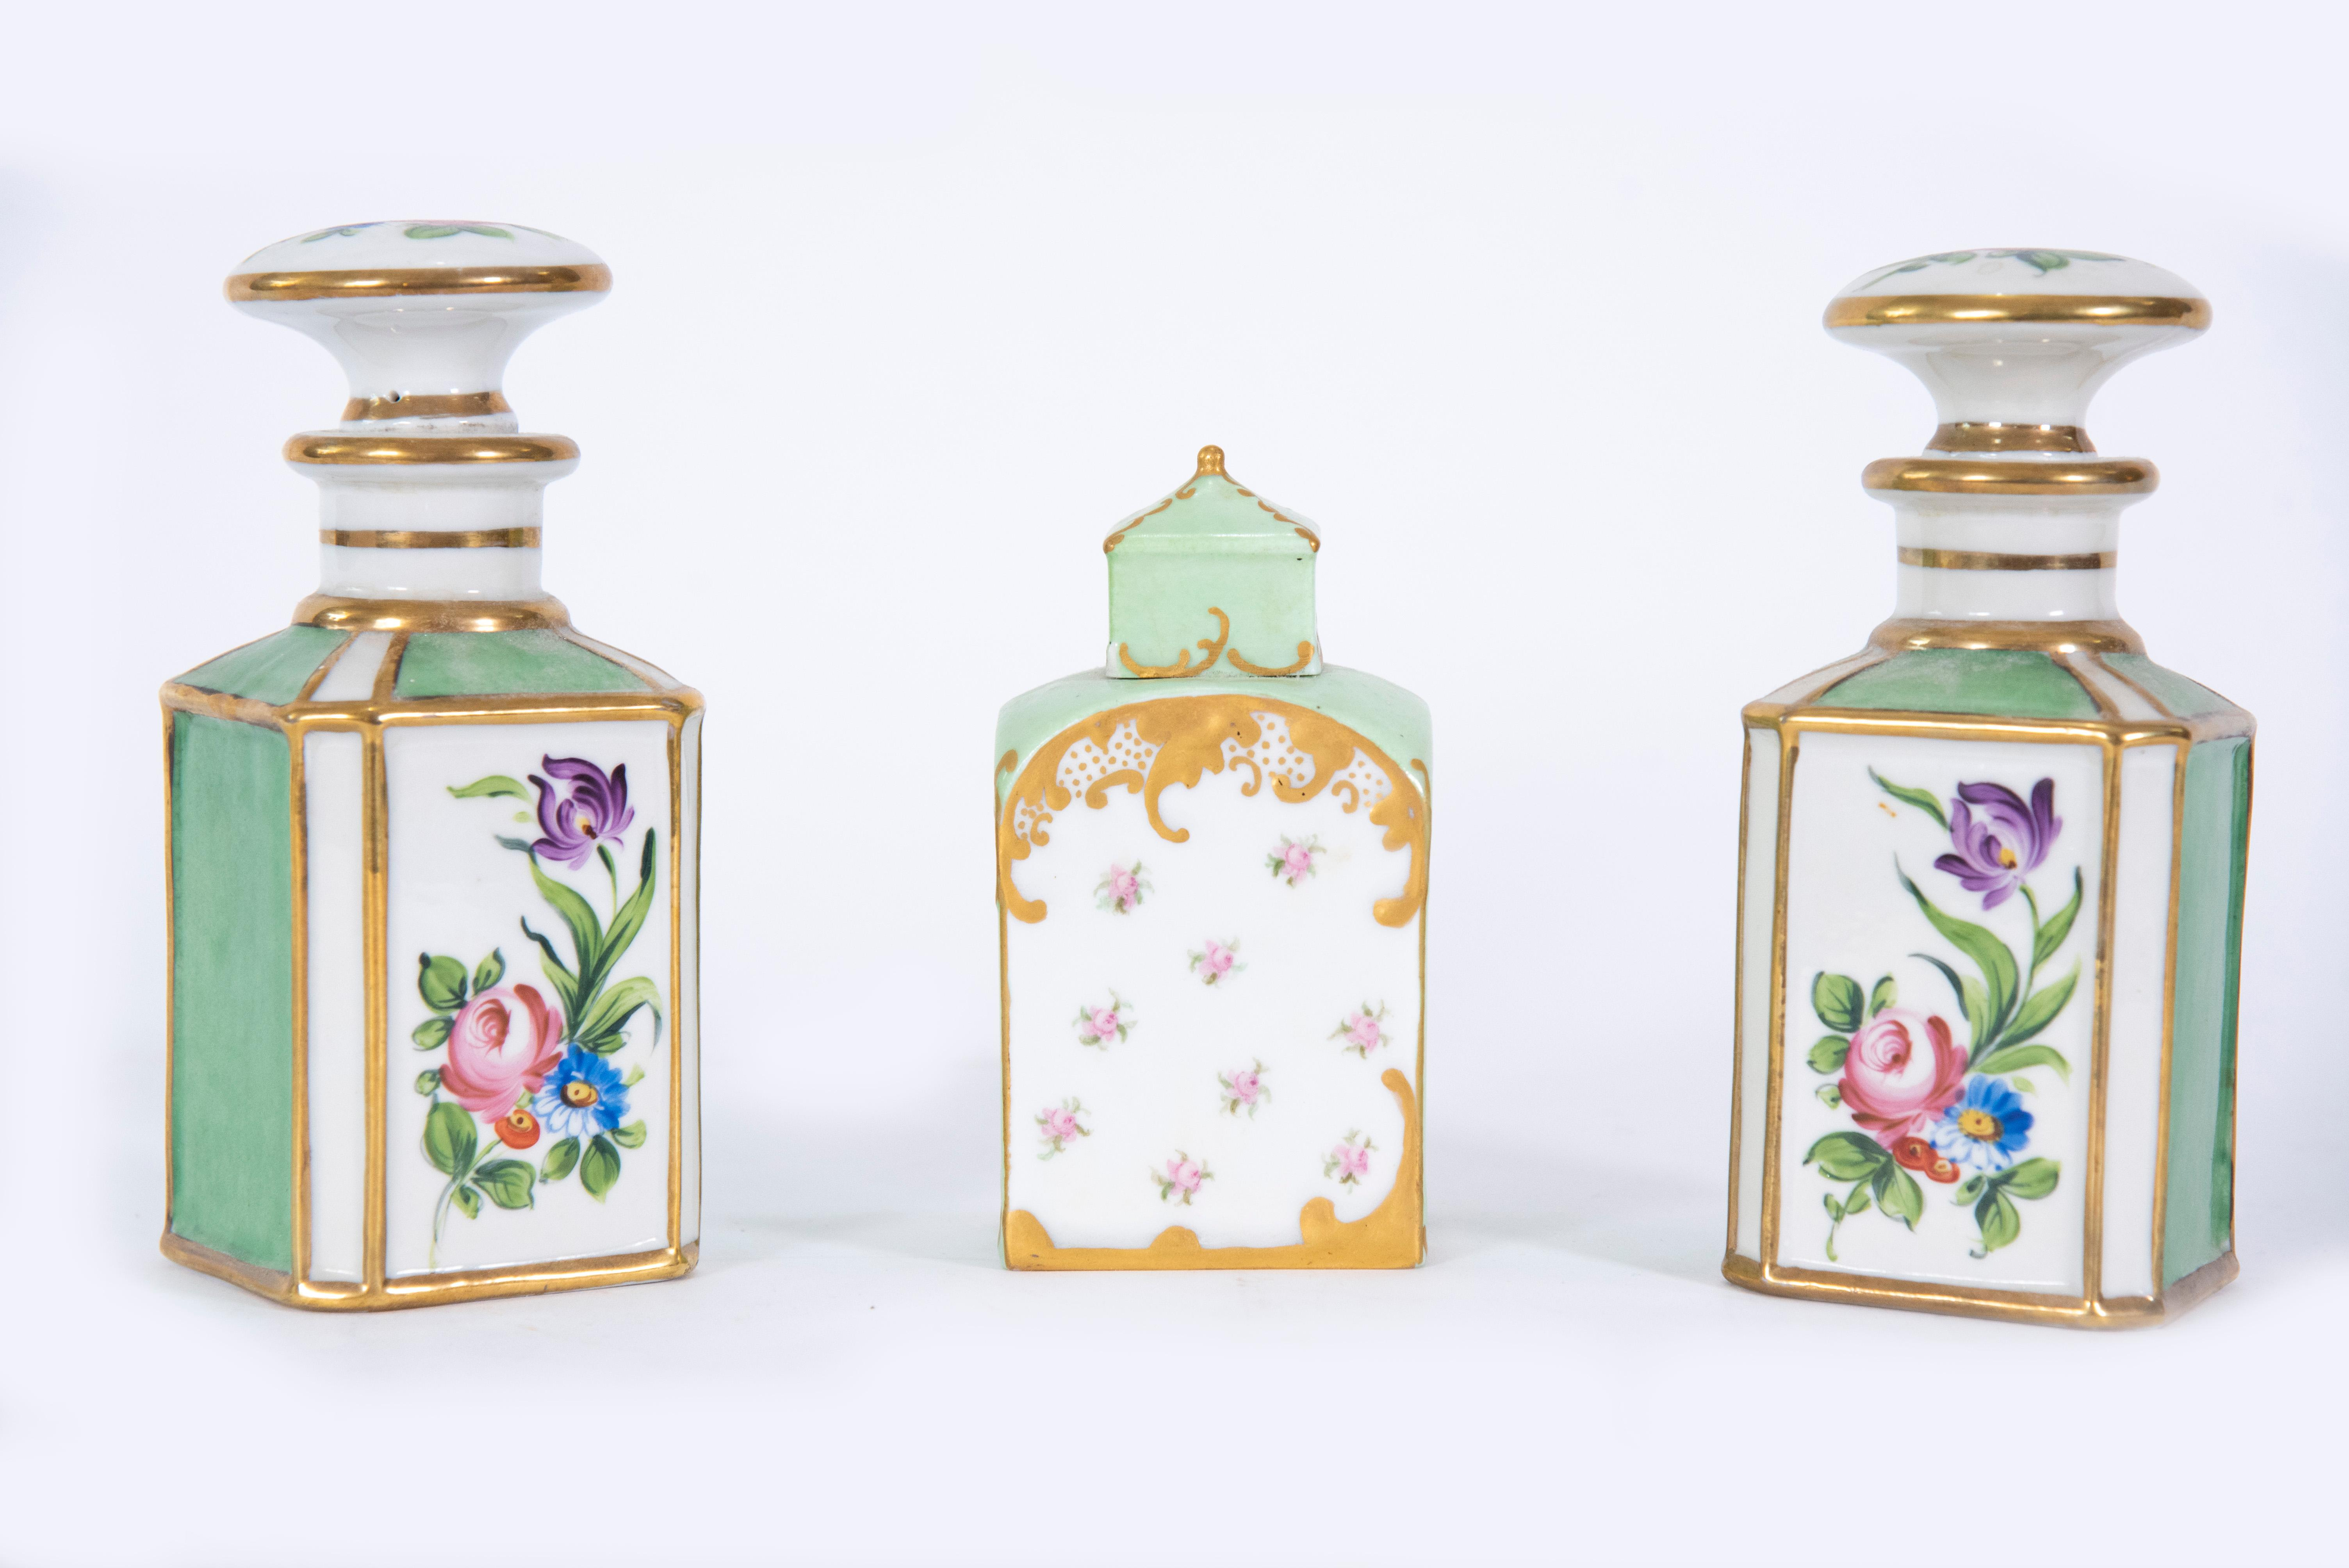 Pair of French Porcelain Scent Bottles, with a Porcelain Tea Caddy